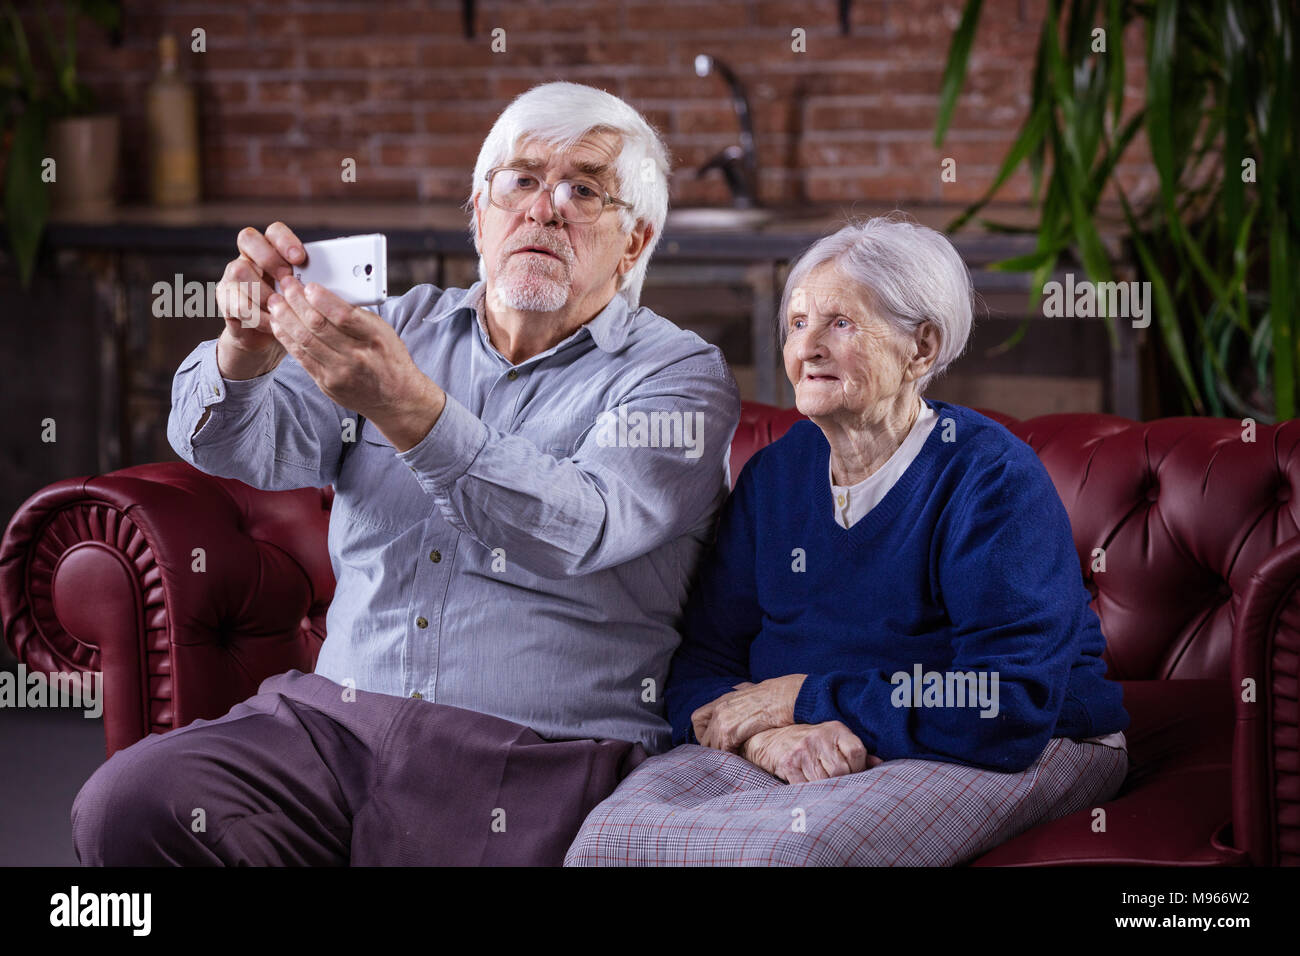 Senior couple taking selfie on smart phone while sitting on couch at home - Stock Image